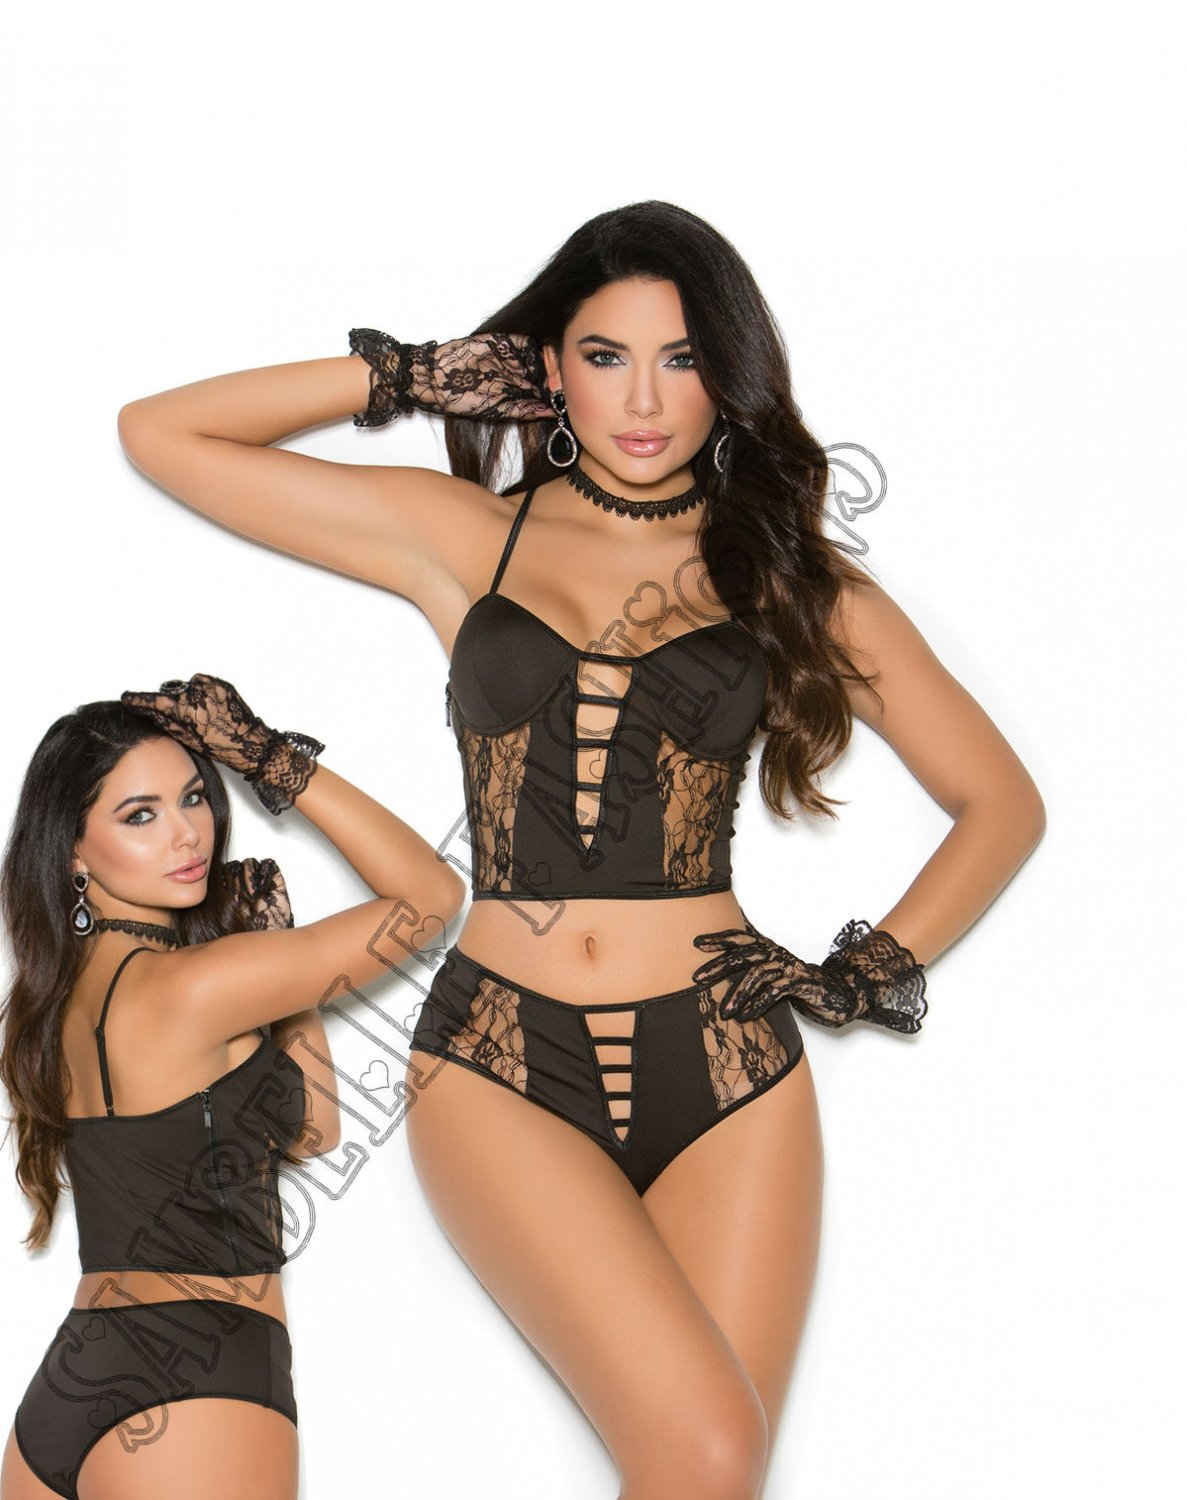 3pc Black Underwire Bralette w/ Lace Inserts, Lace Gloves & Matching Booty Shorts  - Large